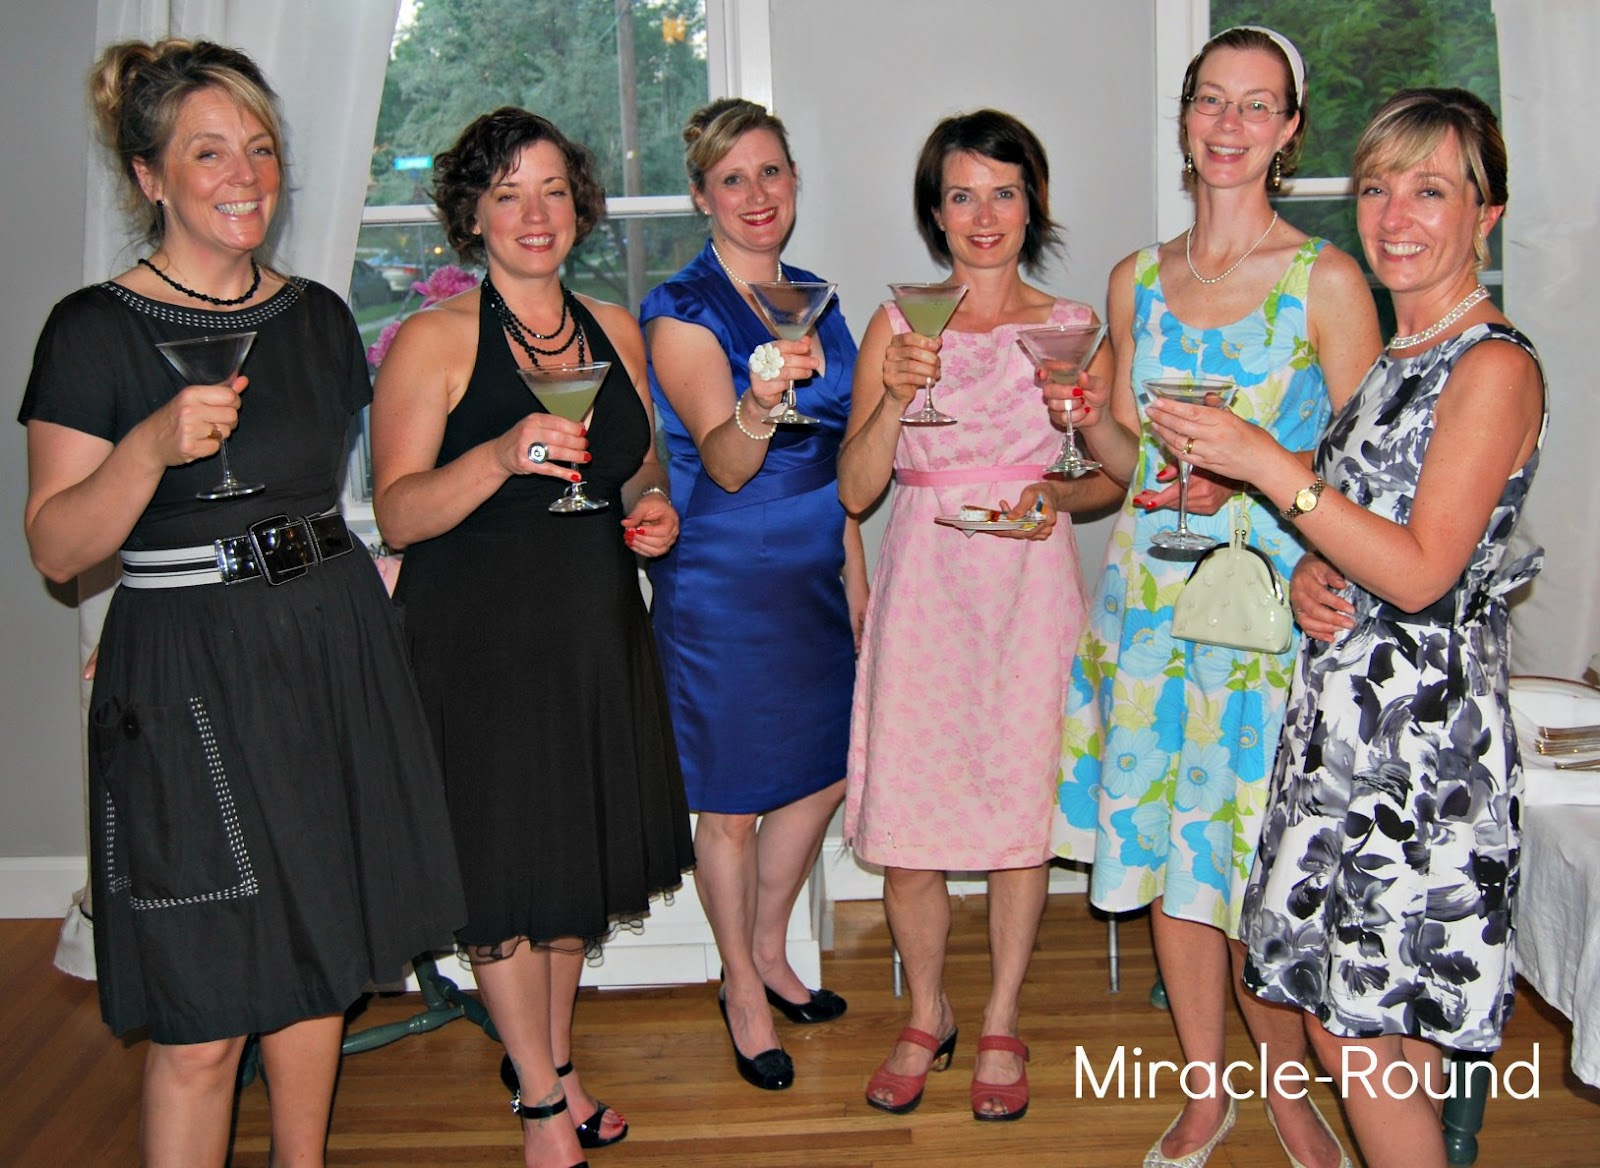 Life on the Miracle-Round: Cocktail Party - Mad Men Style